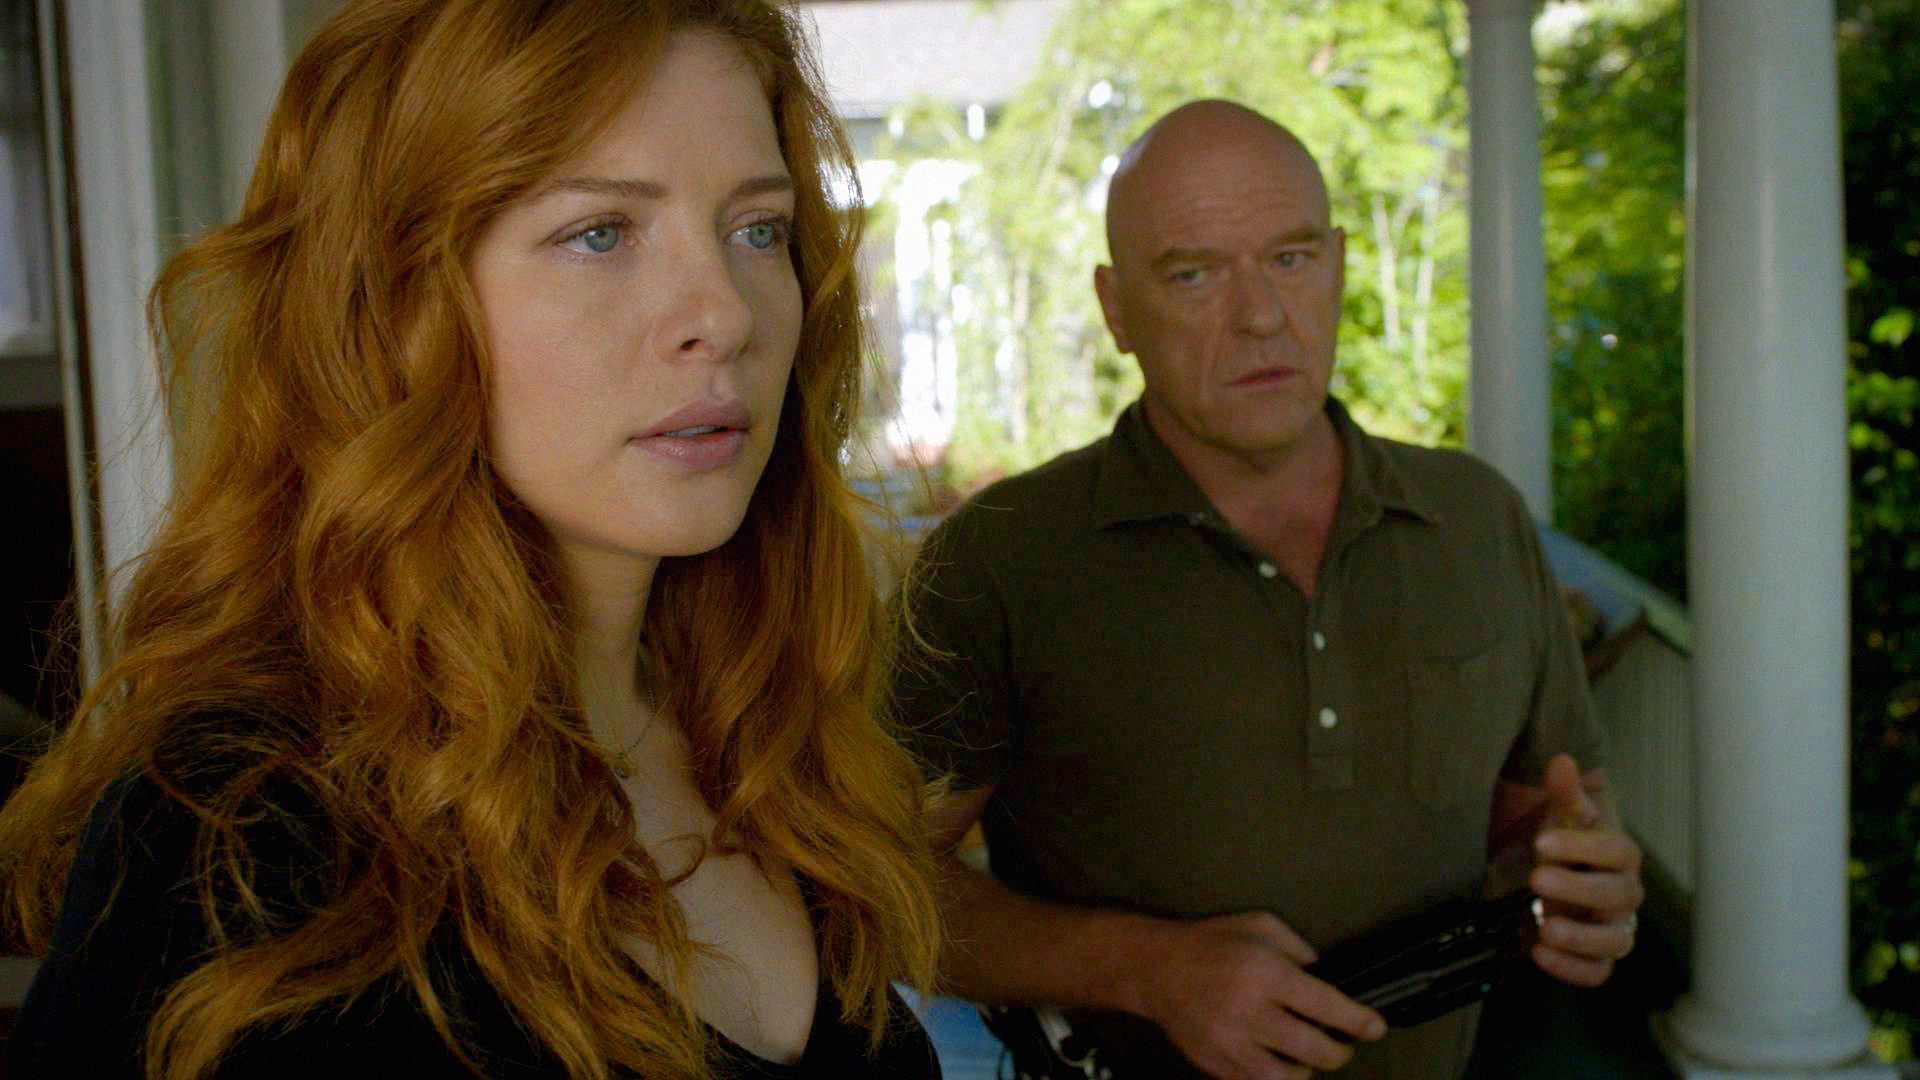 Season 2 Episode 9 - Under The Dome - CBS.com